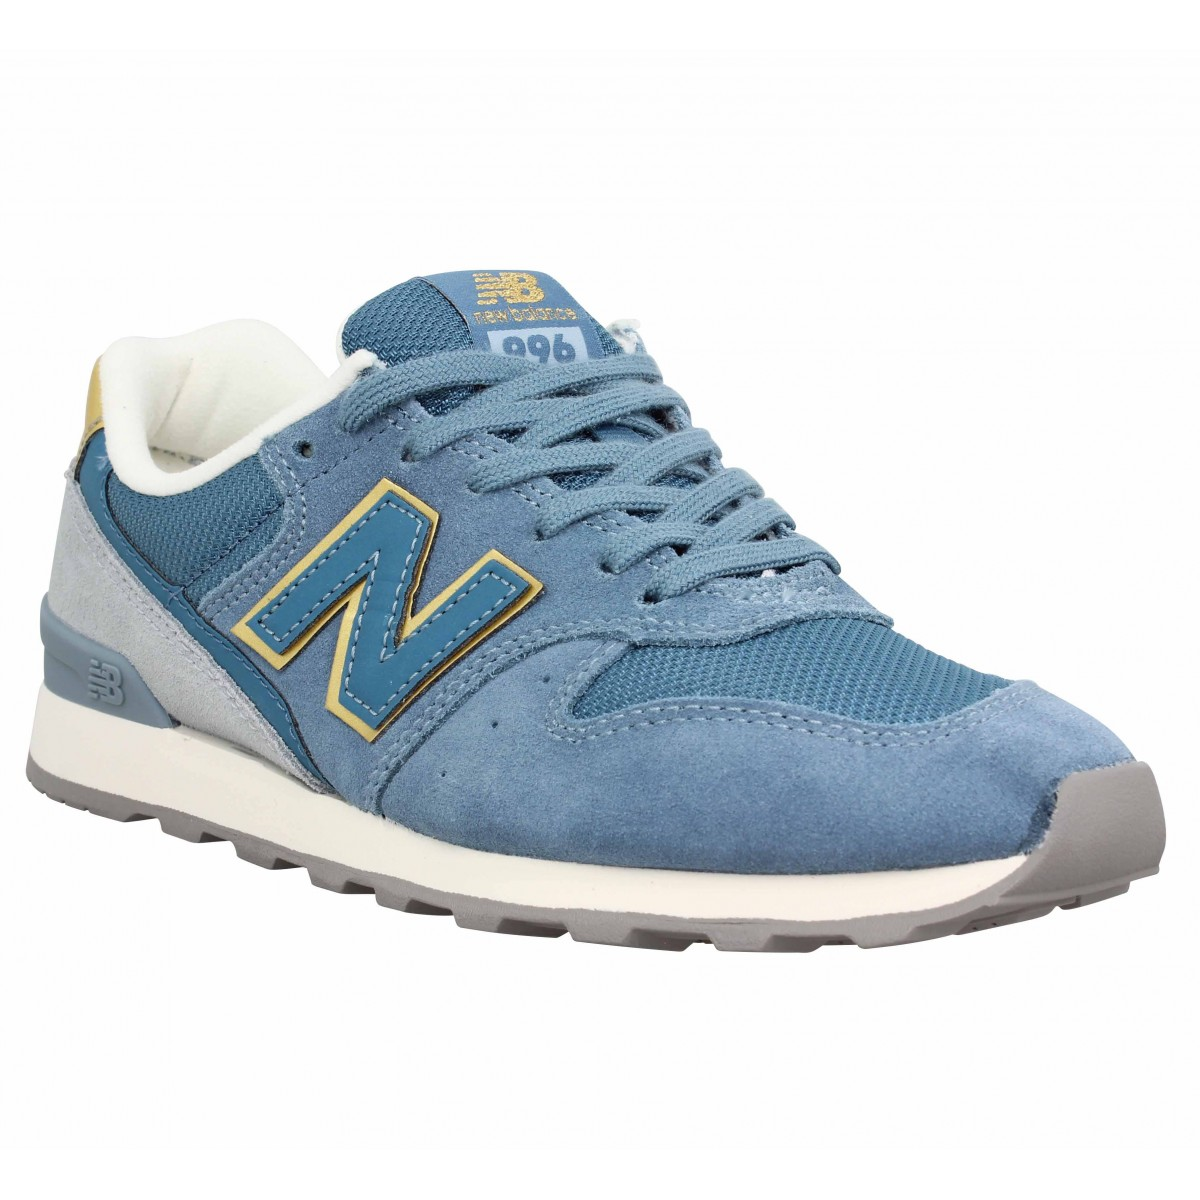 Baskets NEW BALANCE 996 velours Femme Bleu